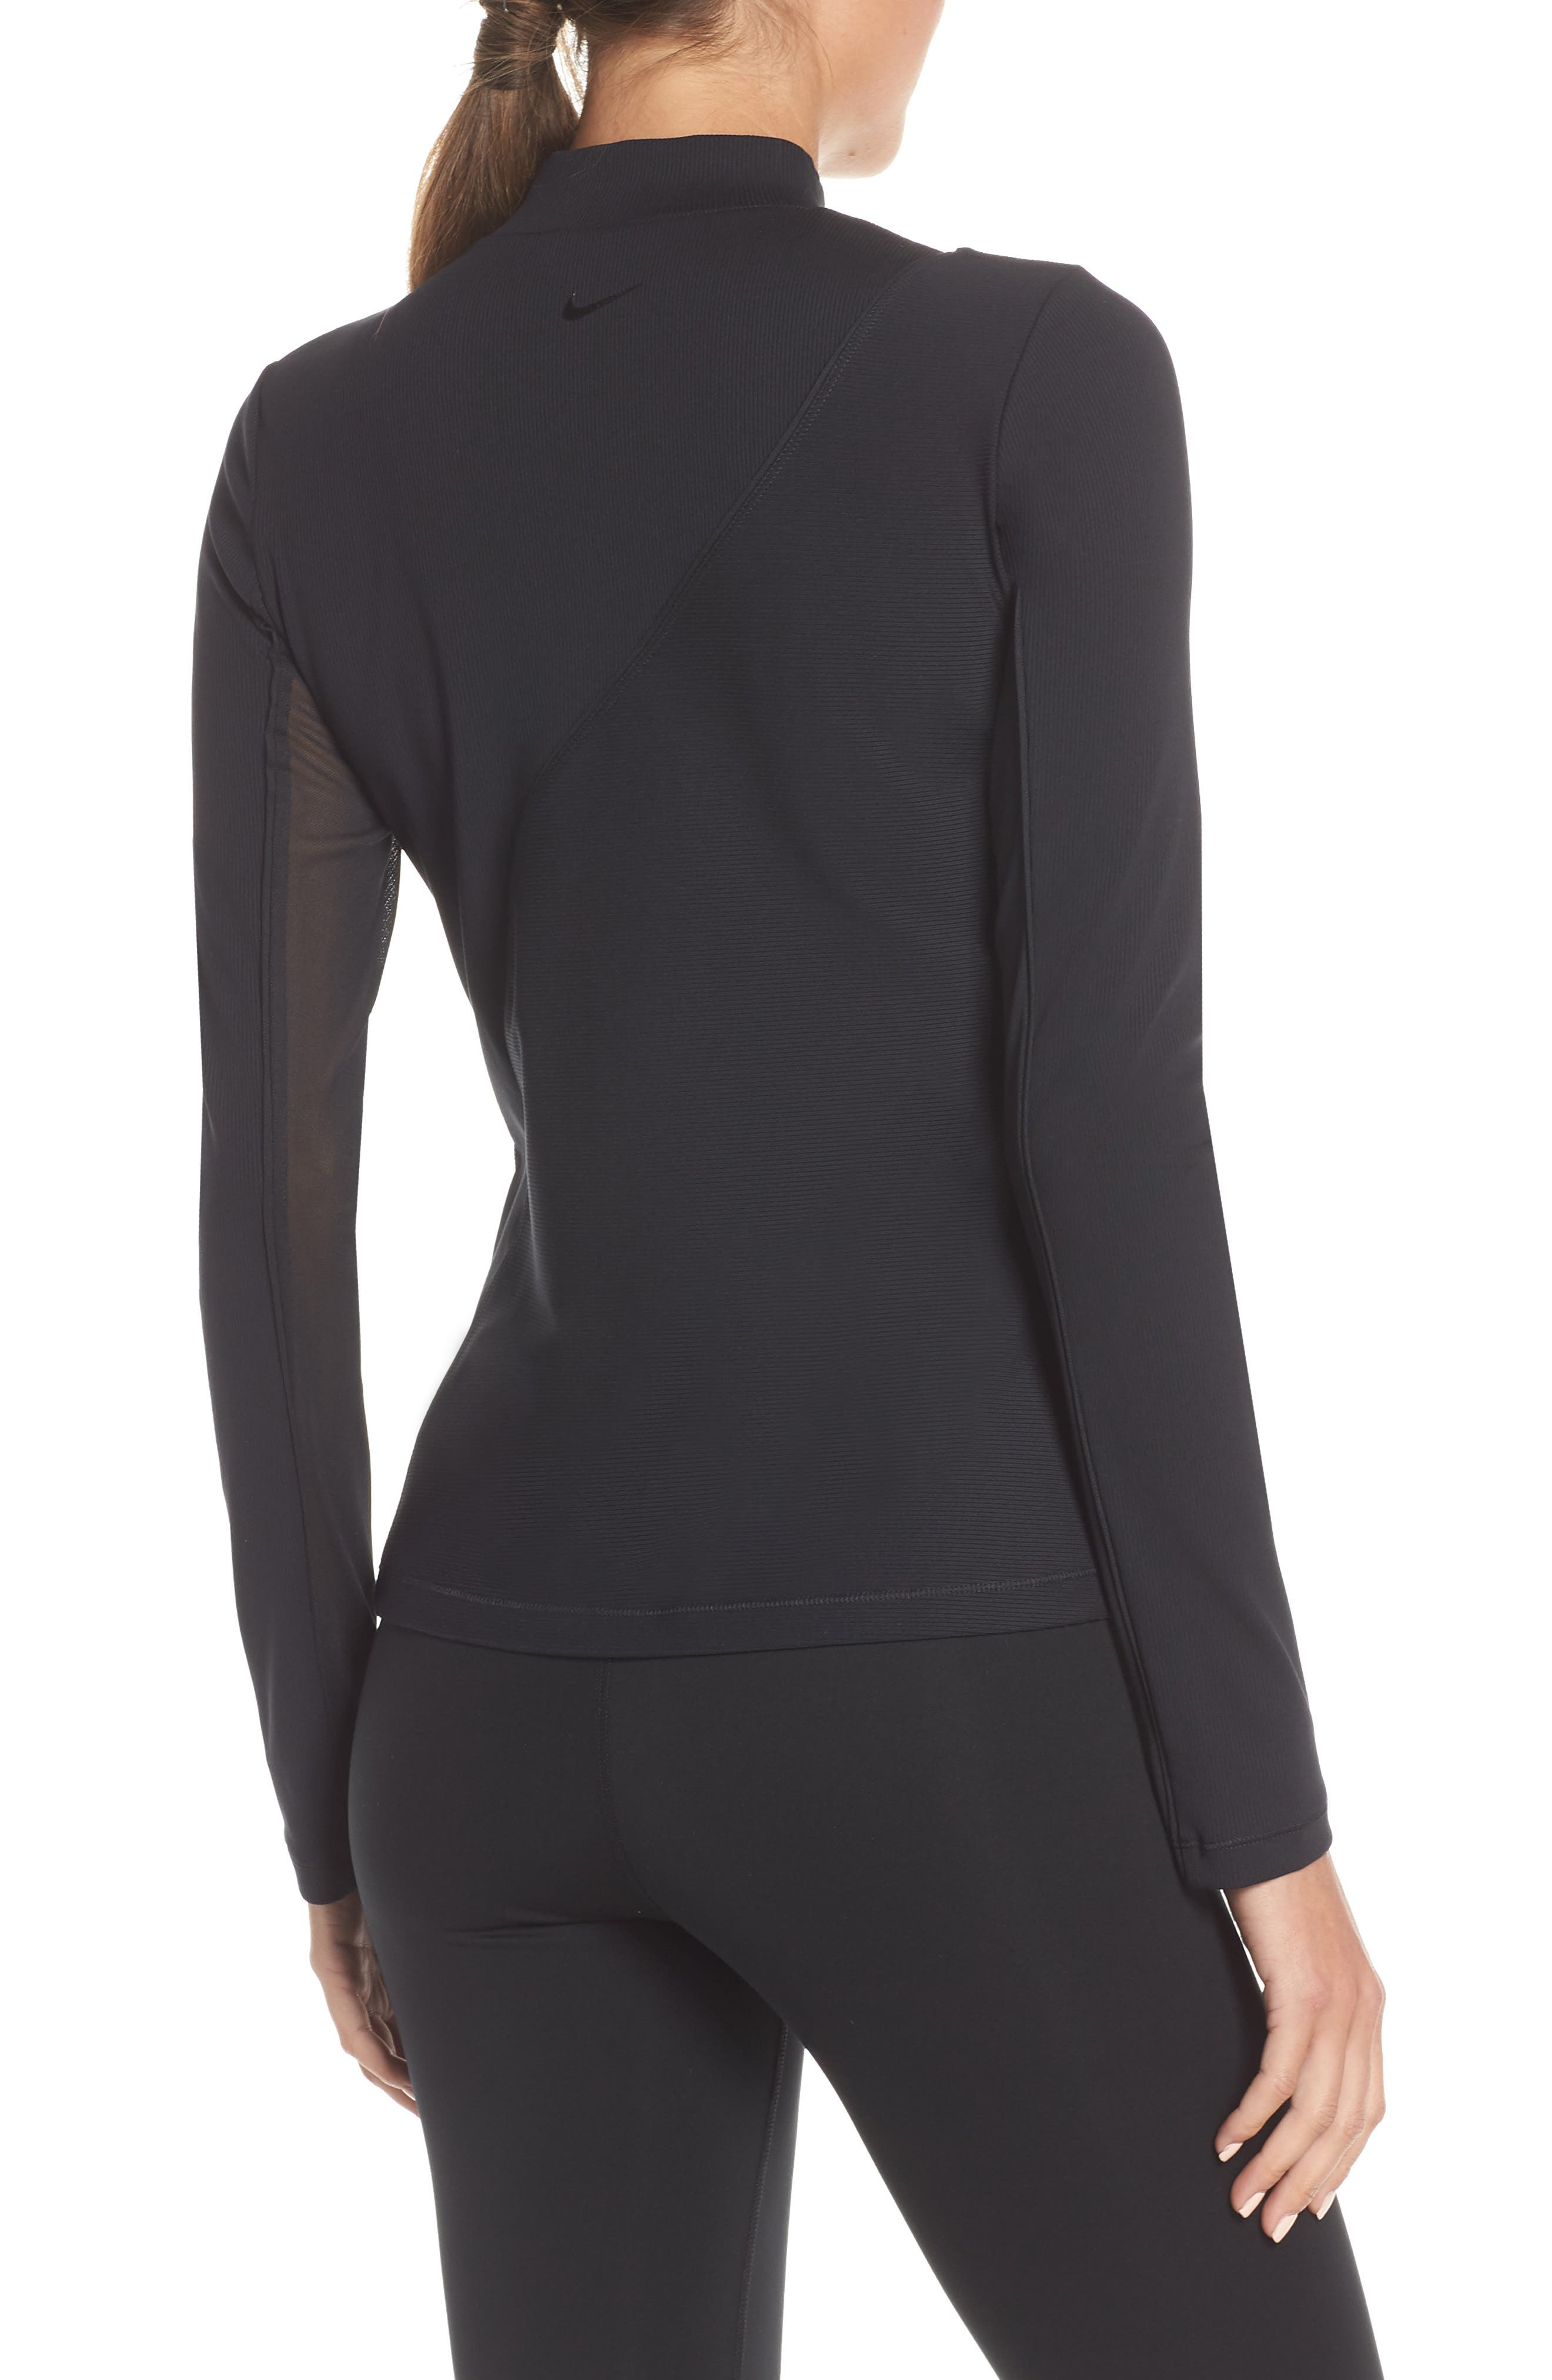 The Nike Pro HyperCool Women's Long Sleeve Ribbed Top,                             Alternate thumbnail 2, color,                             BLACK/ CLEAR